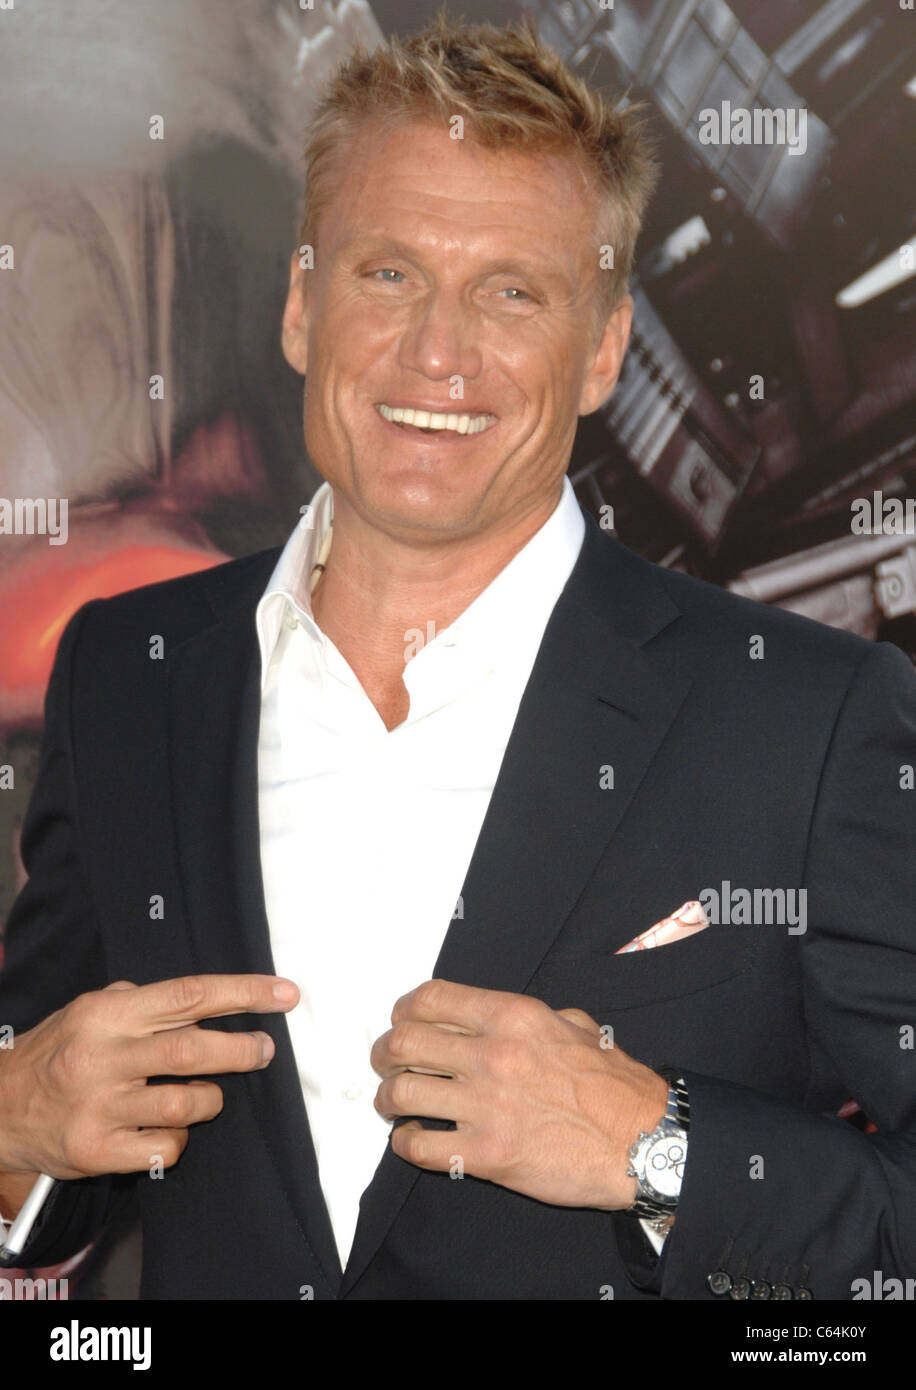 Dolph Lundgren at arrivals for THE EXPENDABLES Premiere, Grauman's Chinese Theatre, Los Angeles, CA August 3, - Stock Image